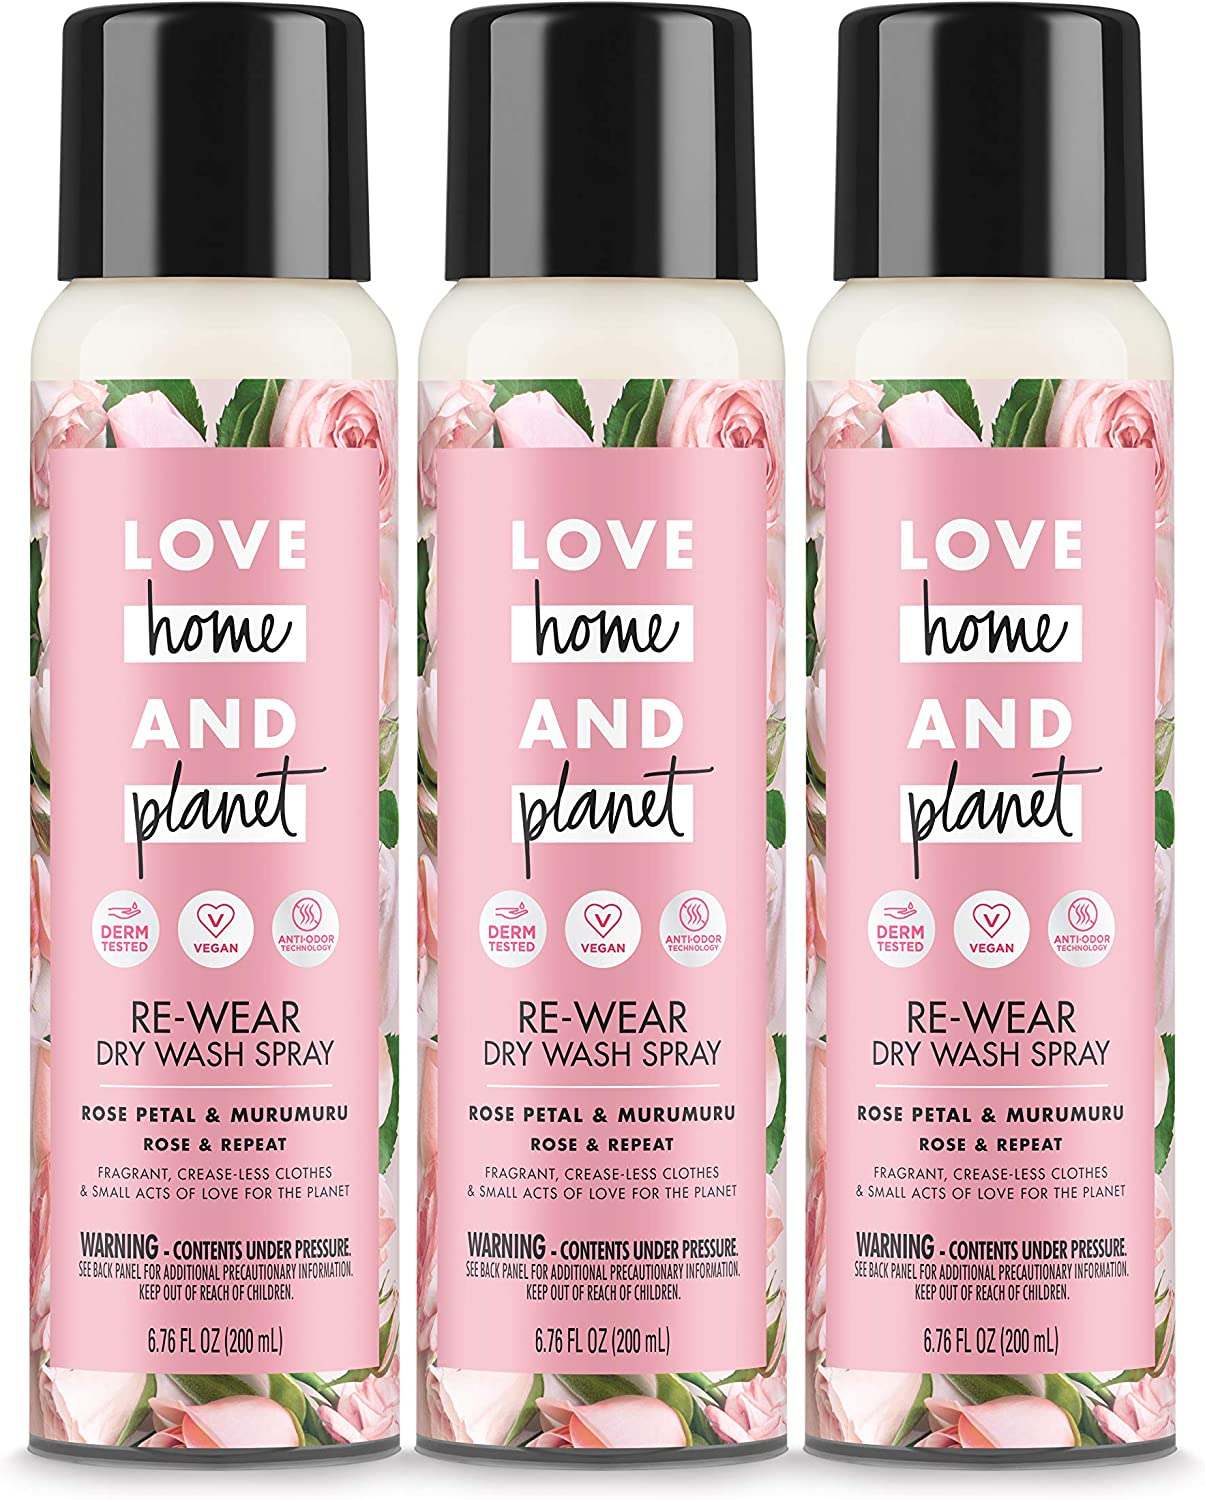 Love Home and Planet Dry Wash Spray Rose Petal & Murumuru 6.76 Fl Oz, Pack of 3